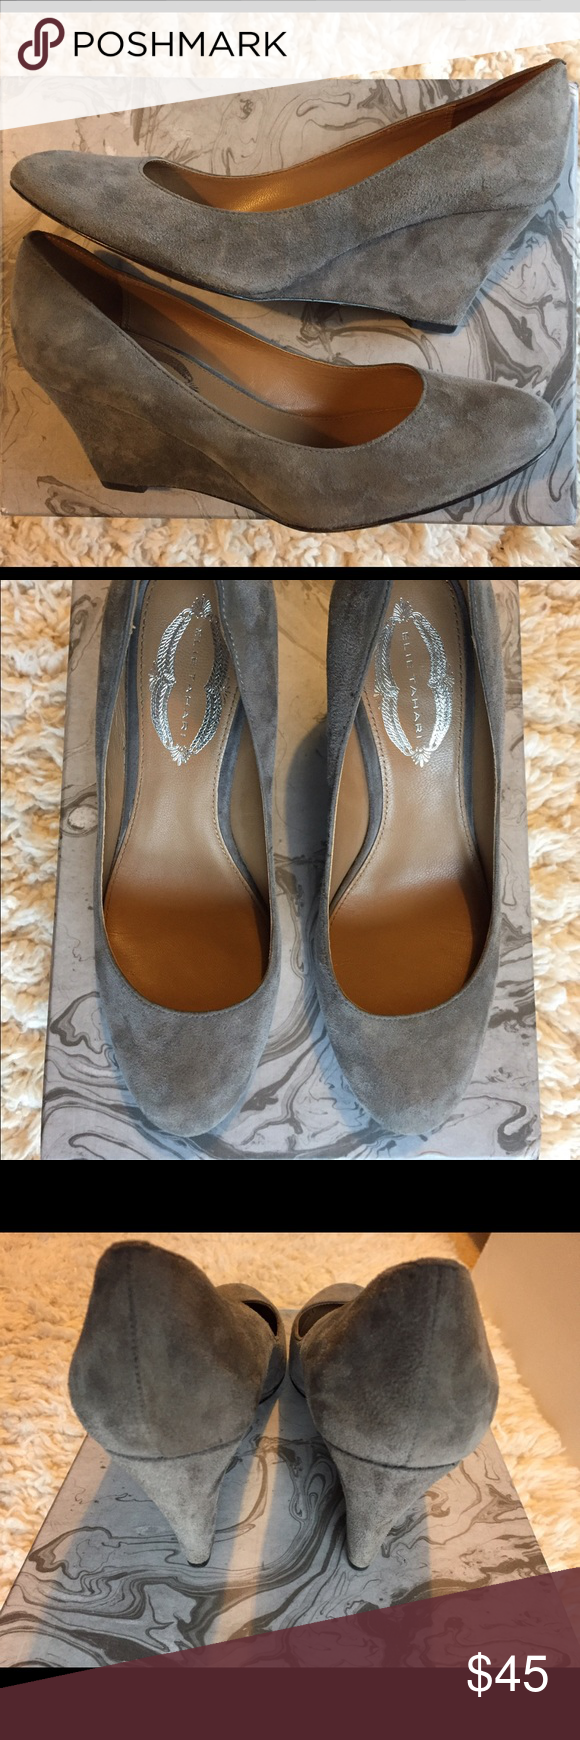 """Elie Tahari Gray Suede Wedges 38 These beautiful gray suede wedges from Elie Tahari show zero wear on suede and inside soles and very slight wear on the bottom soles.    -Bottom soles are leather with a large rubber pad for stability  -Genuine suede upper -Heel measures 3"""" -Lightly padded footbed    -European size 38 is US women's 8  These are in excellent shape. I try to represent the item well via pictures. Feel free to ask any questions! Elie Tahari Shoes Wedges"""